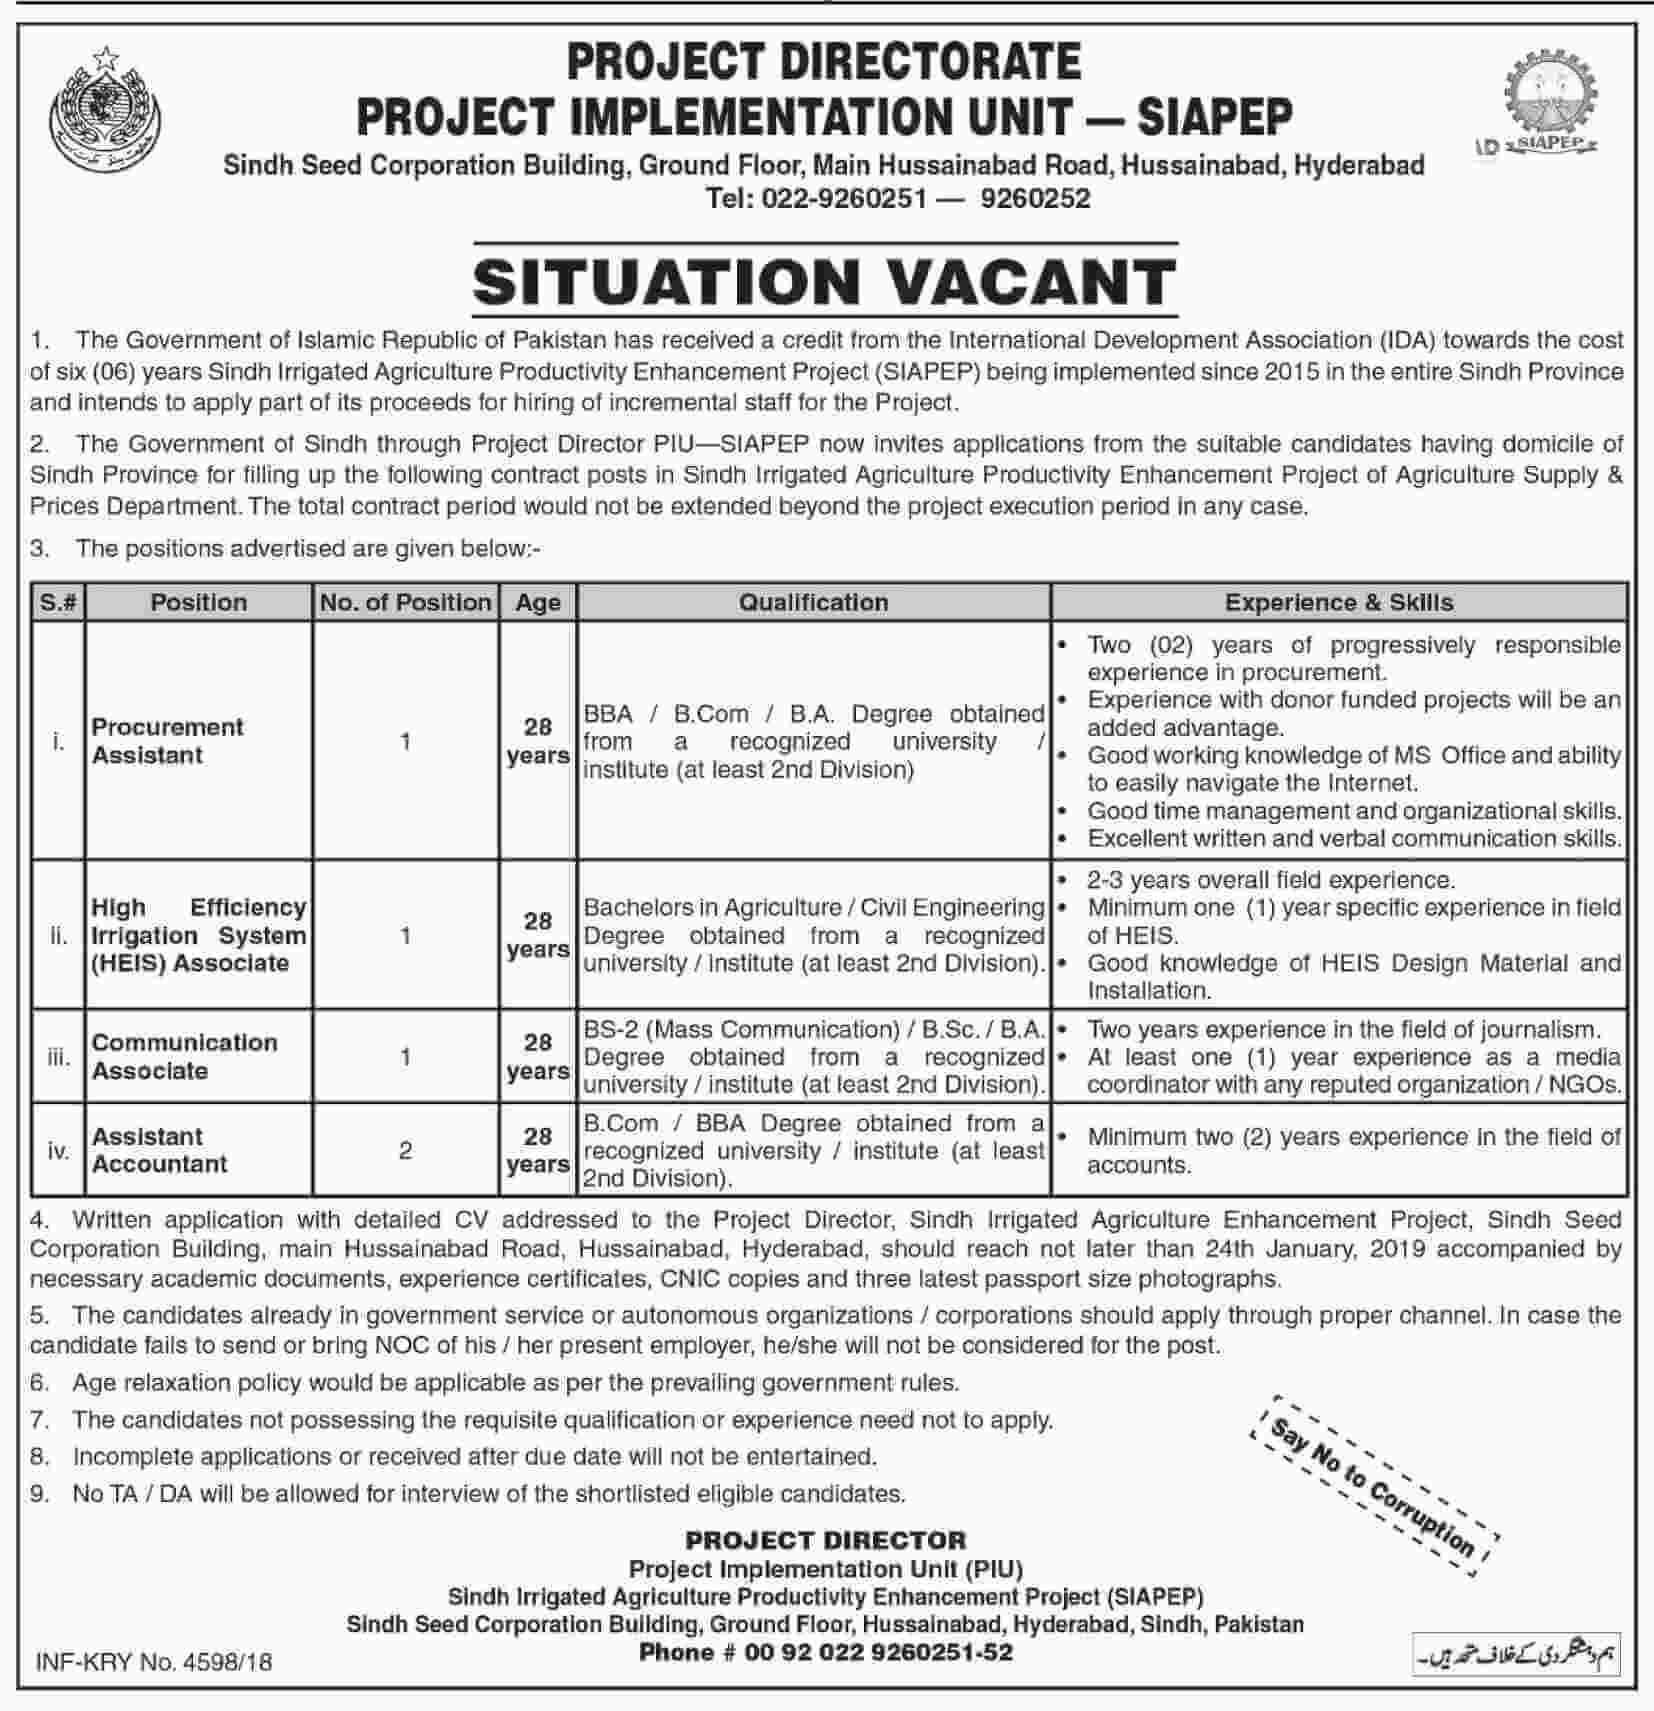 Project Implementation Unit Jobs 2019 Government Pakistan in Sindh on January, 2019 | Government